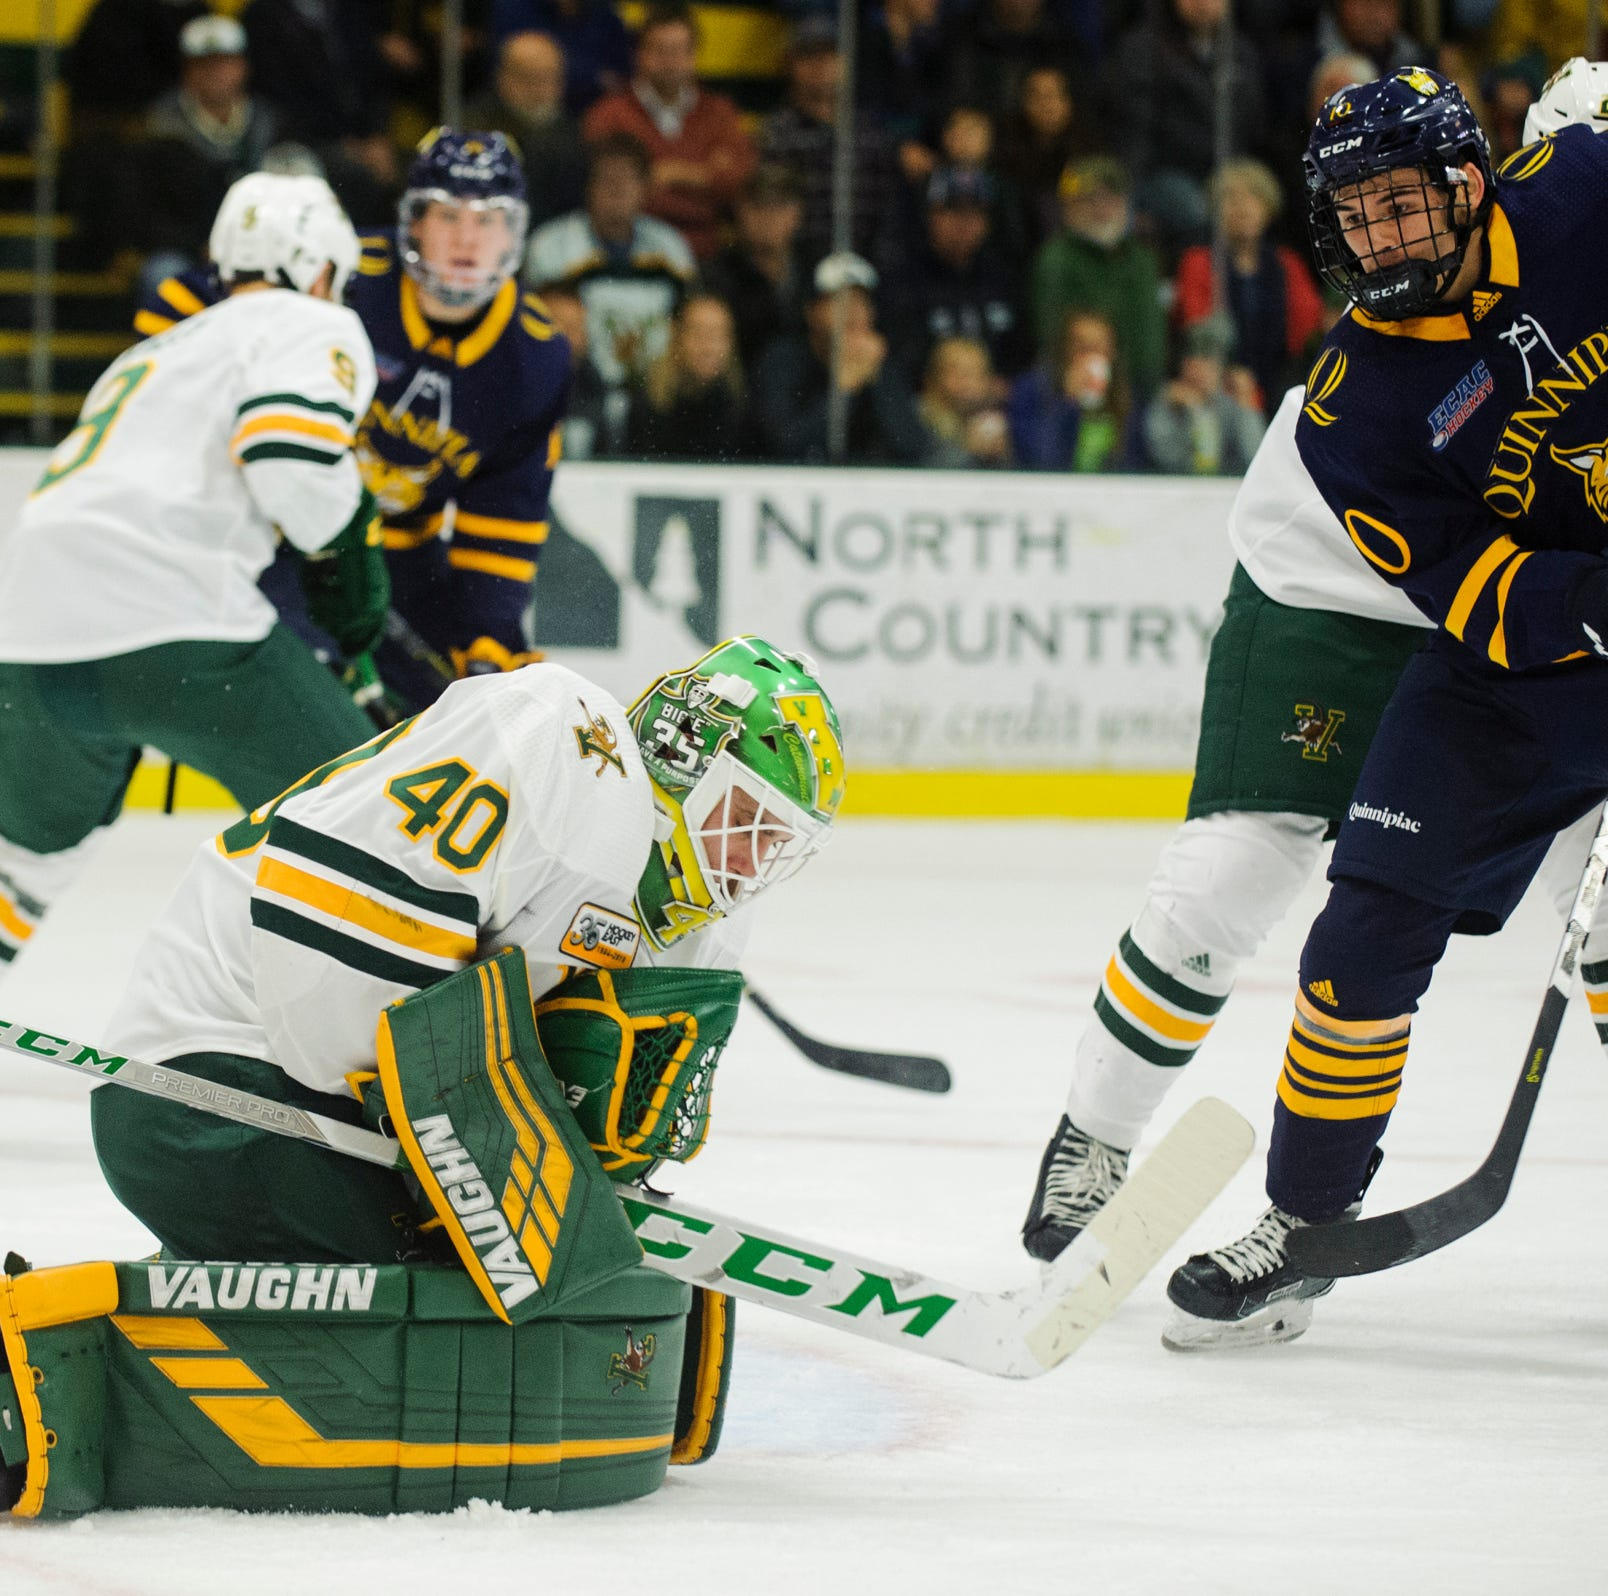 Vermont goalie Stefanos Lekkas (40) makes a save during the men's hockey game between the Quinnipiac Bobcats and the Vermont Catamounts at Gutterson Field House on Saturday night October 13, 2018 in Burlington. (BRIAN JENKINS/for the FRESS PRESS)